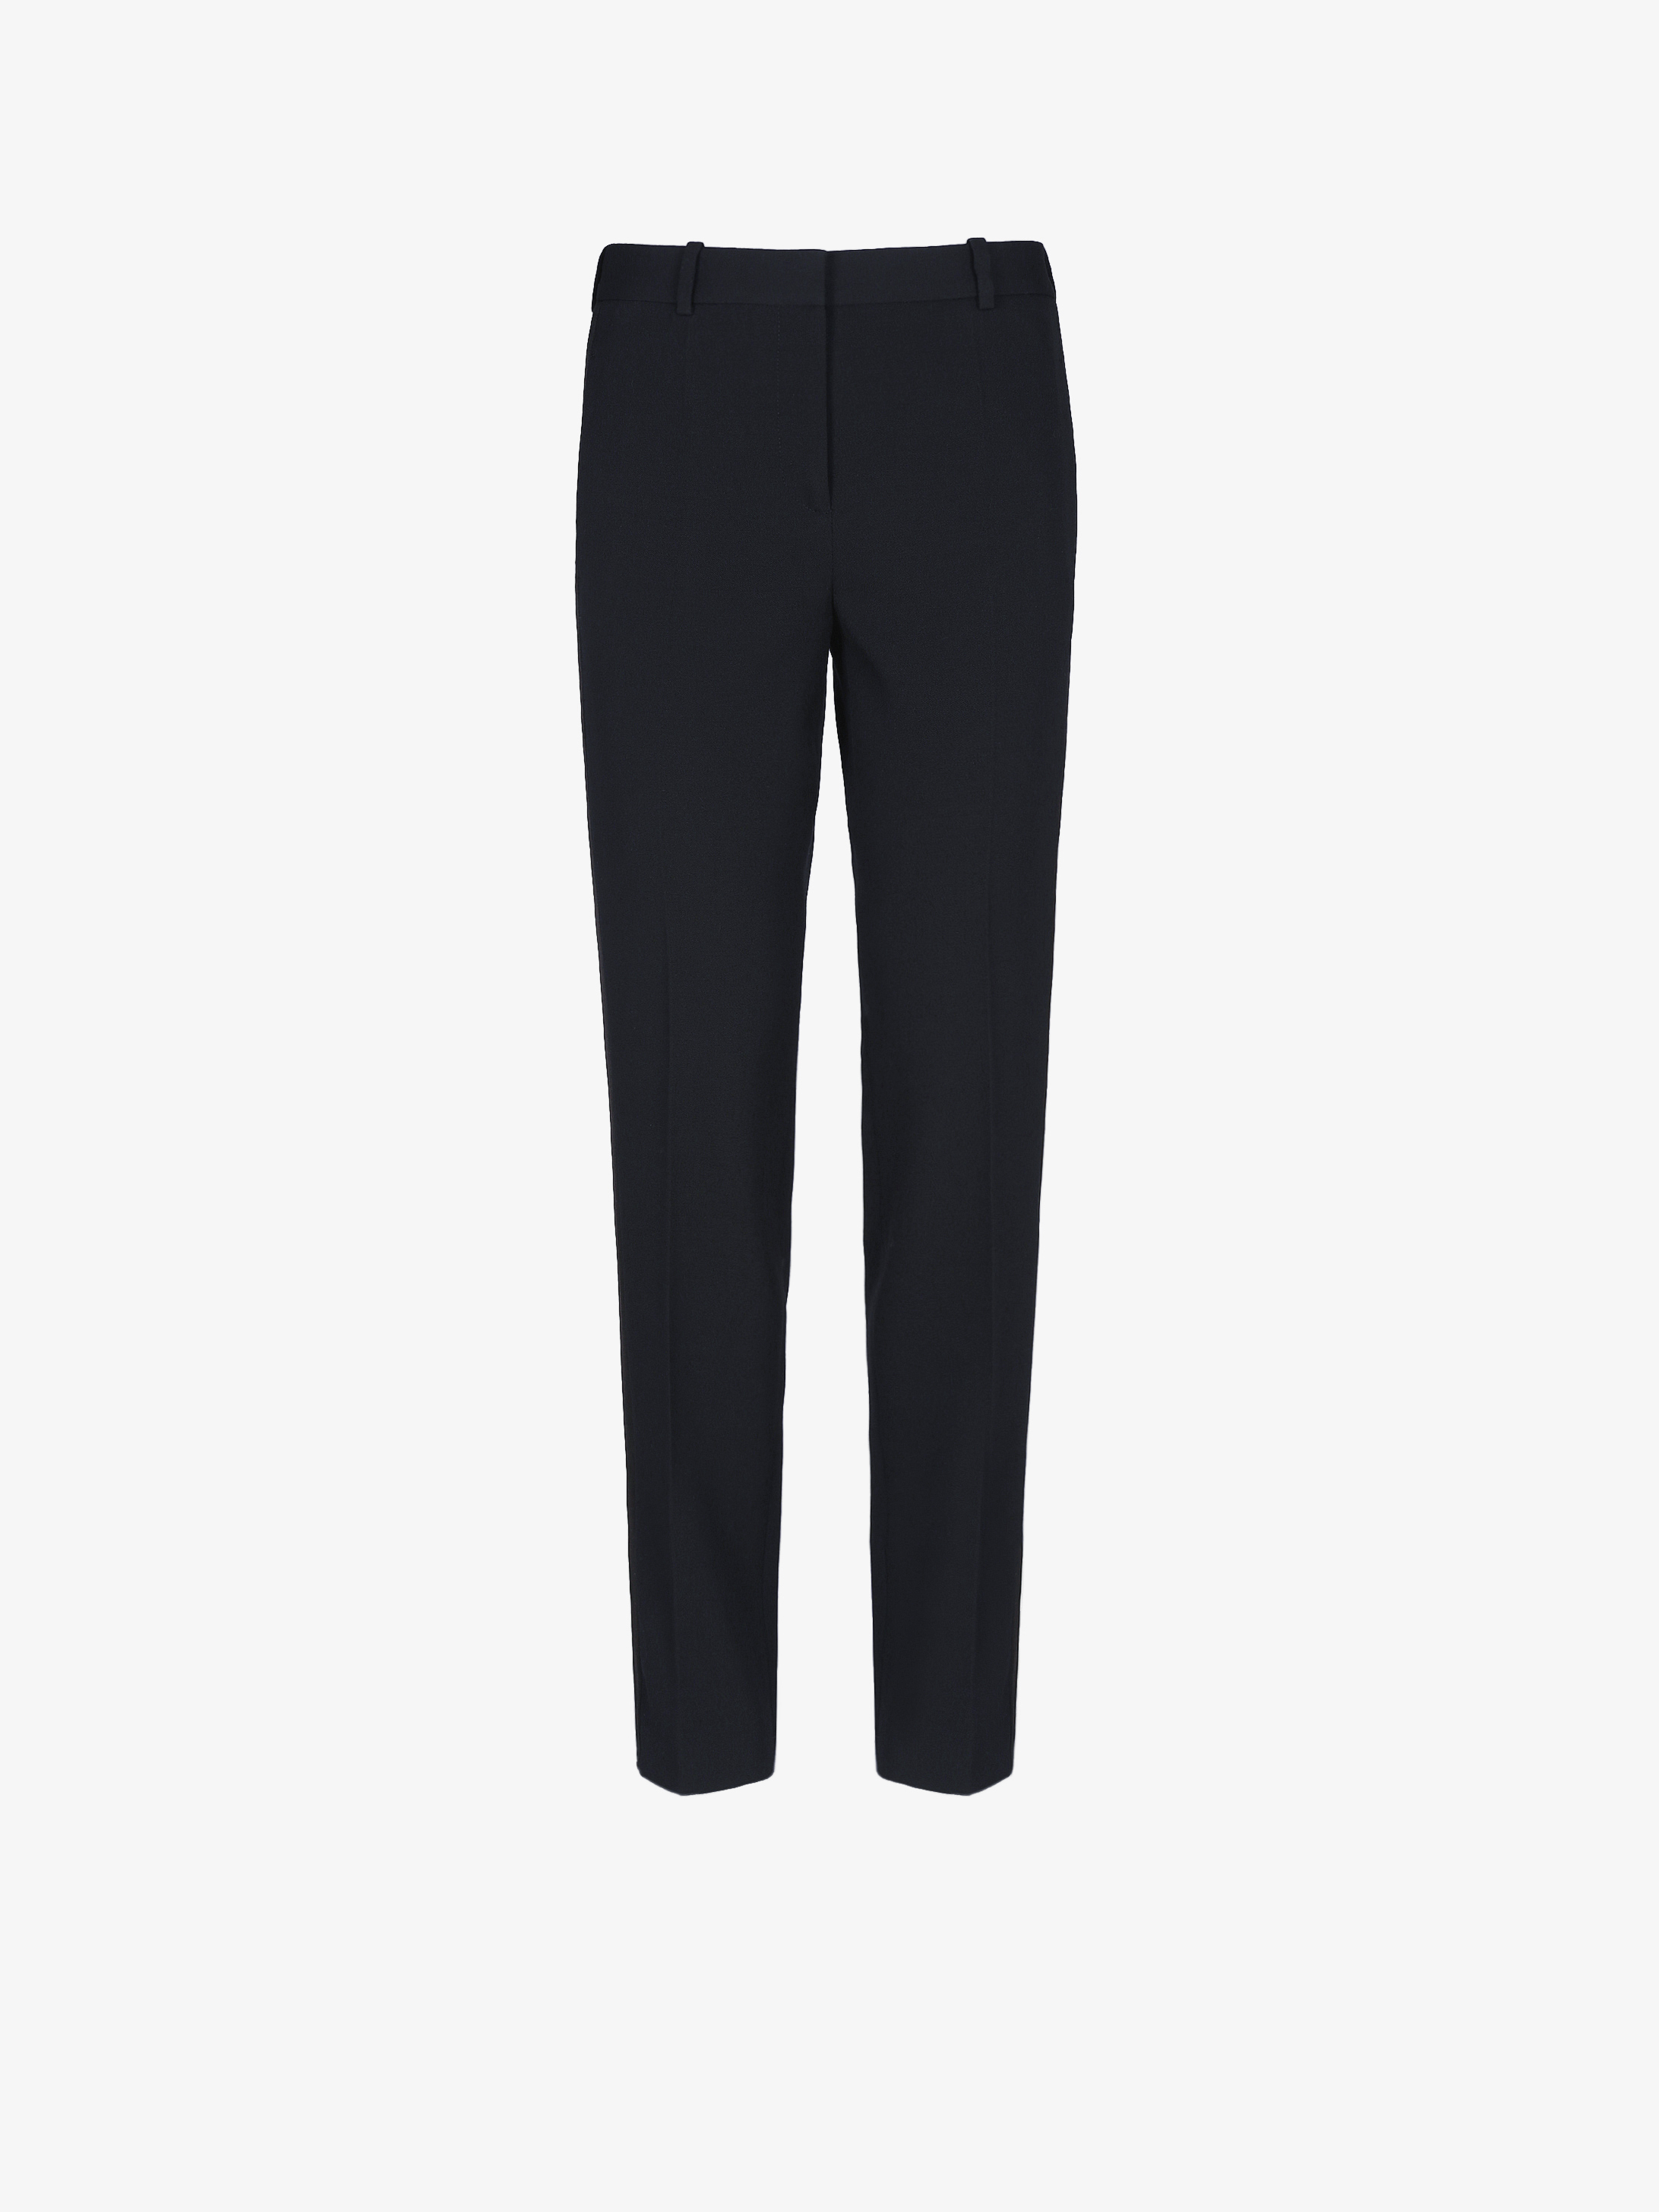 Tuxedo cigarette pants with satin band